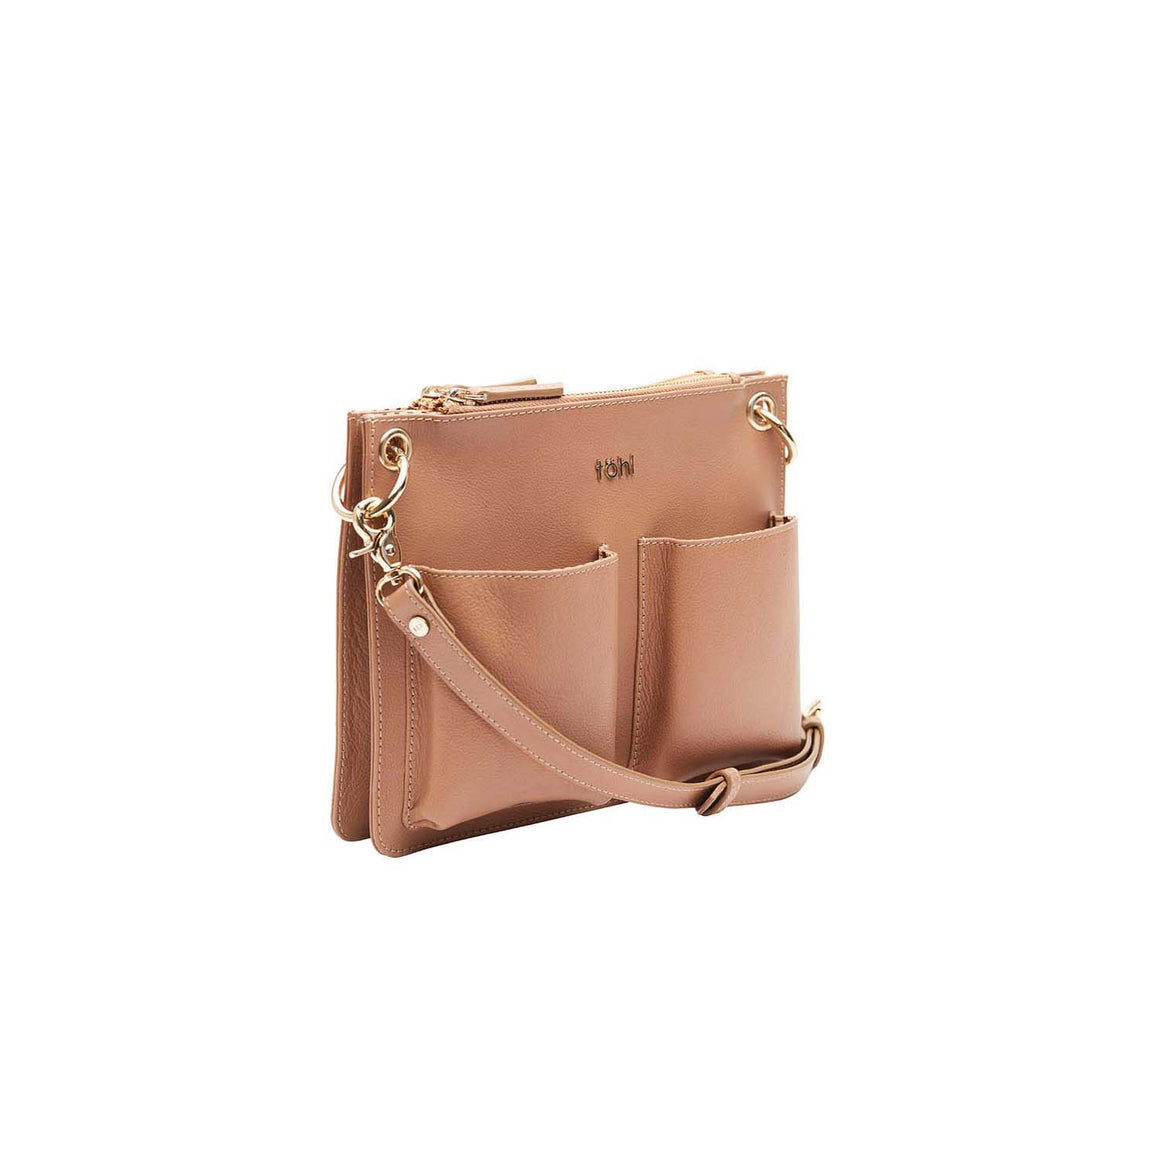 SG 0025 - TOHL LENZEIN WOMEN'S SLING & CROSSBODY BAG - NUDE